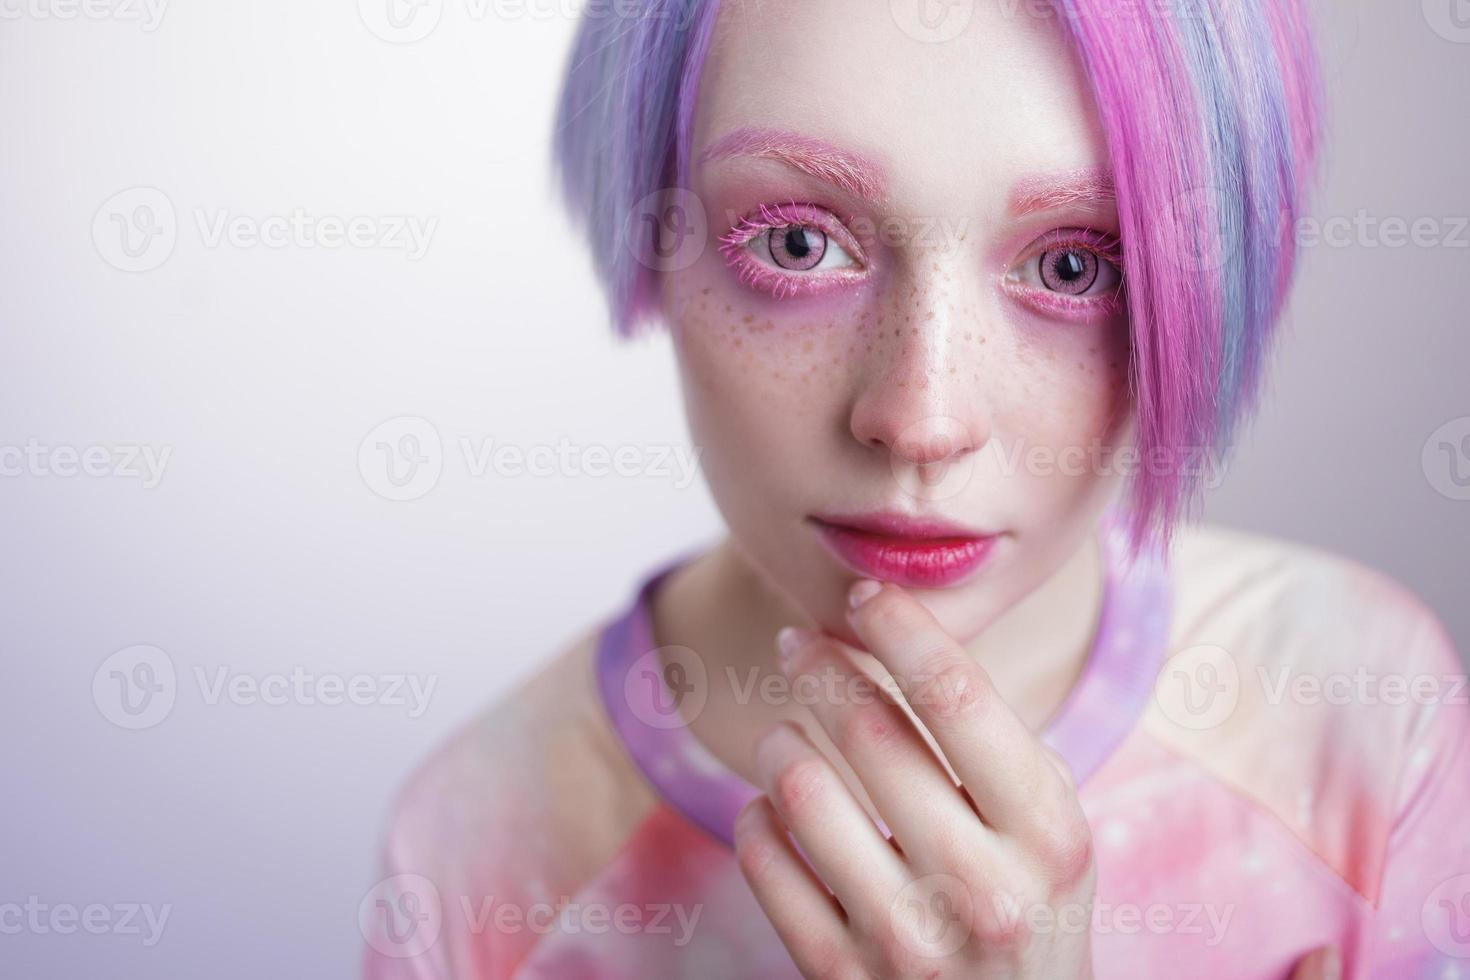 young girl with pink eyes and hair, like a doll photo